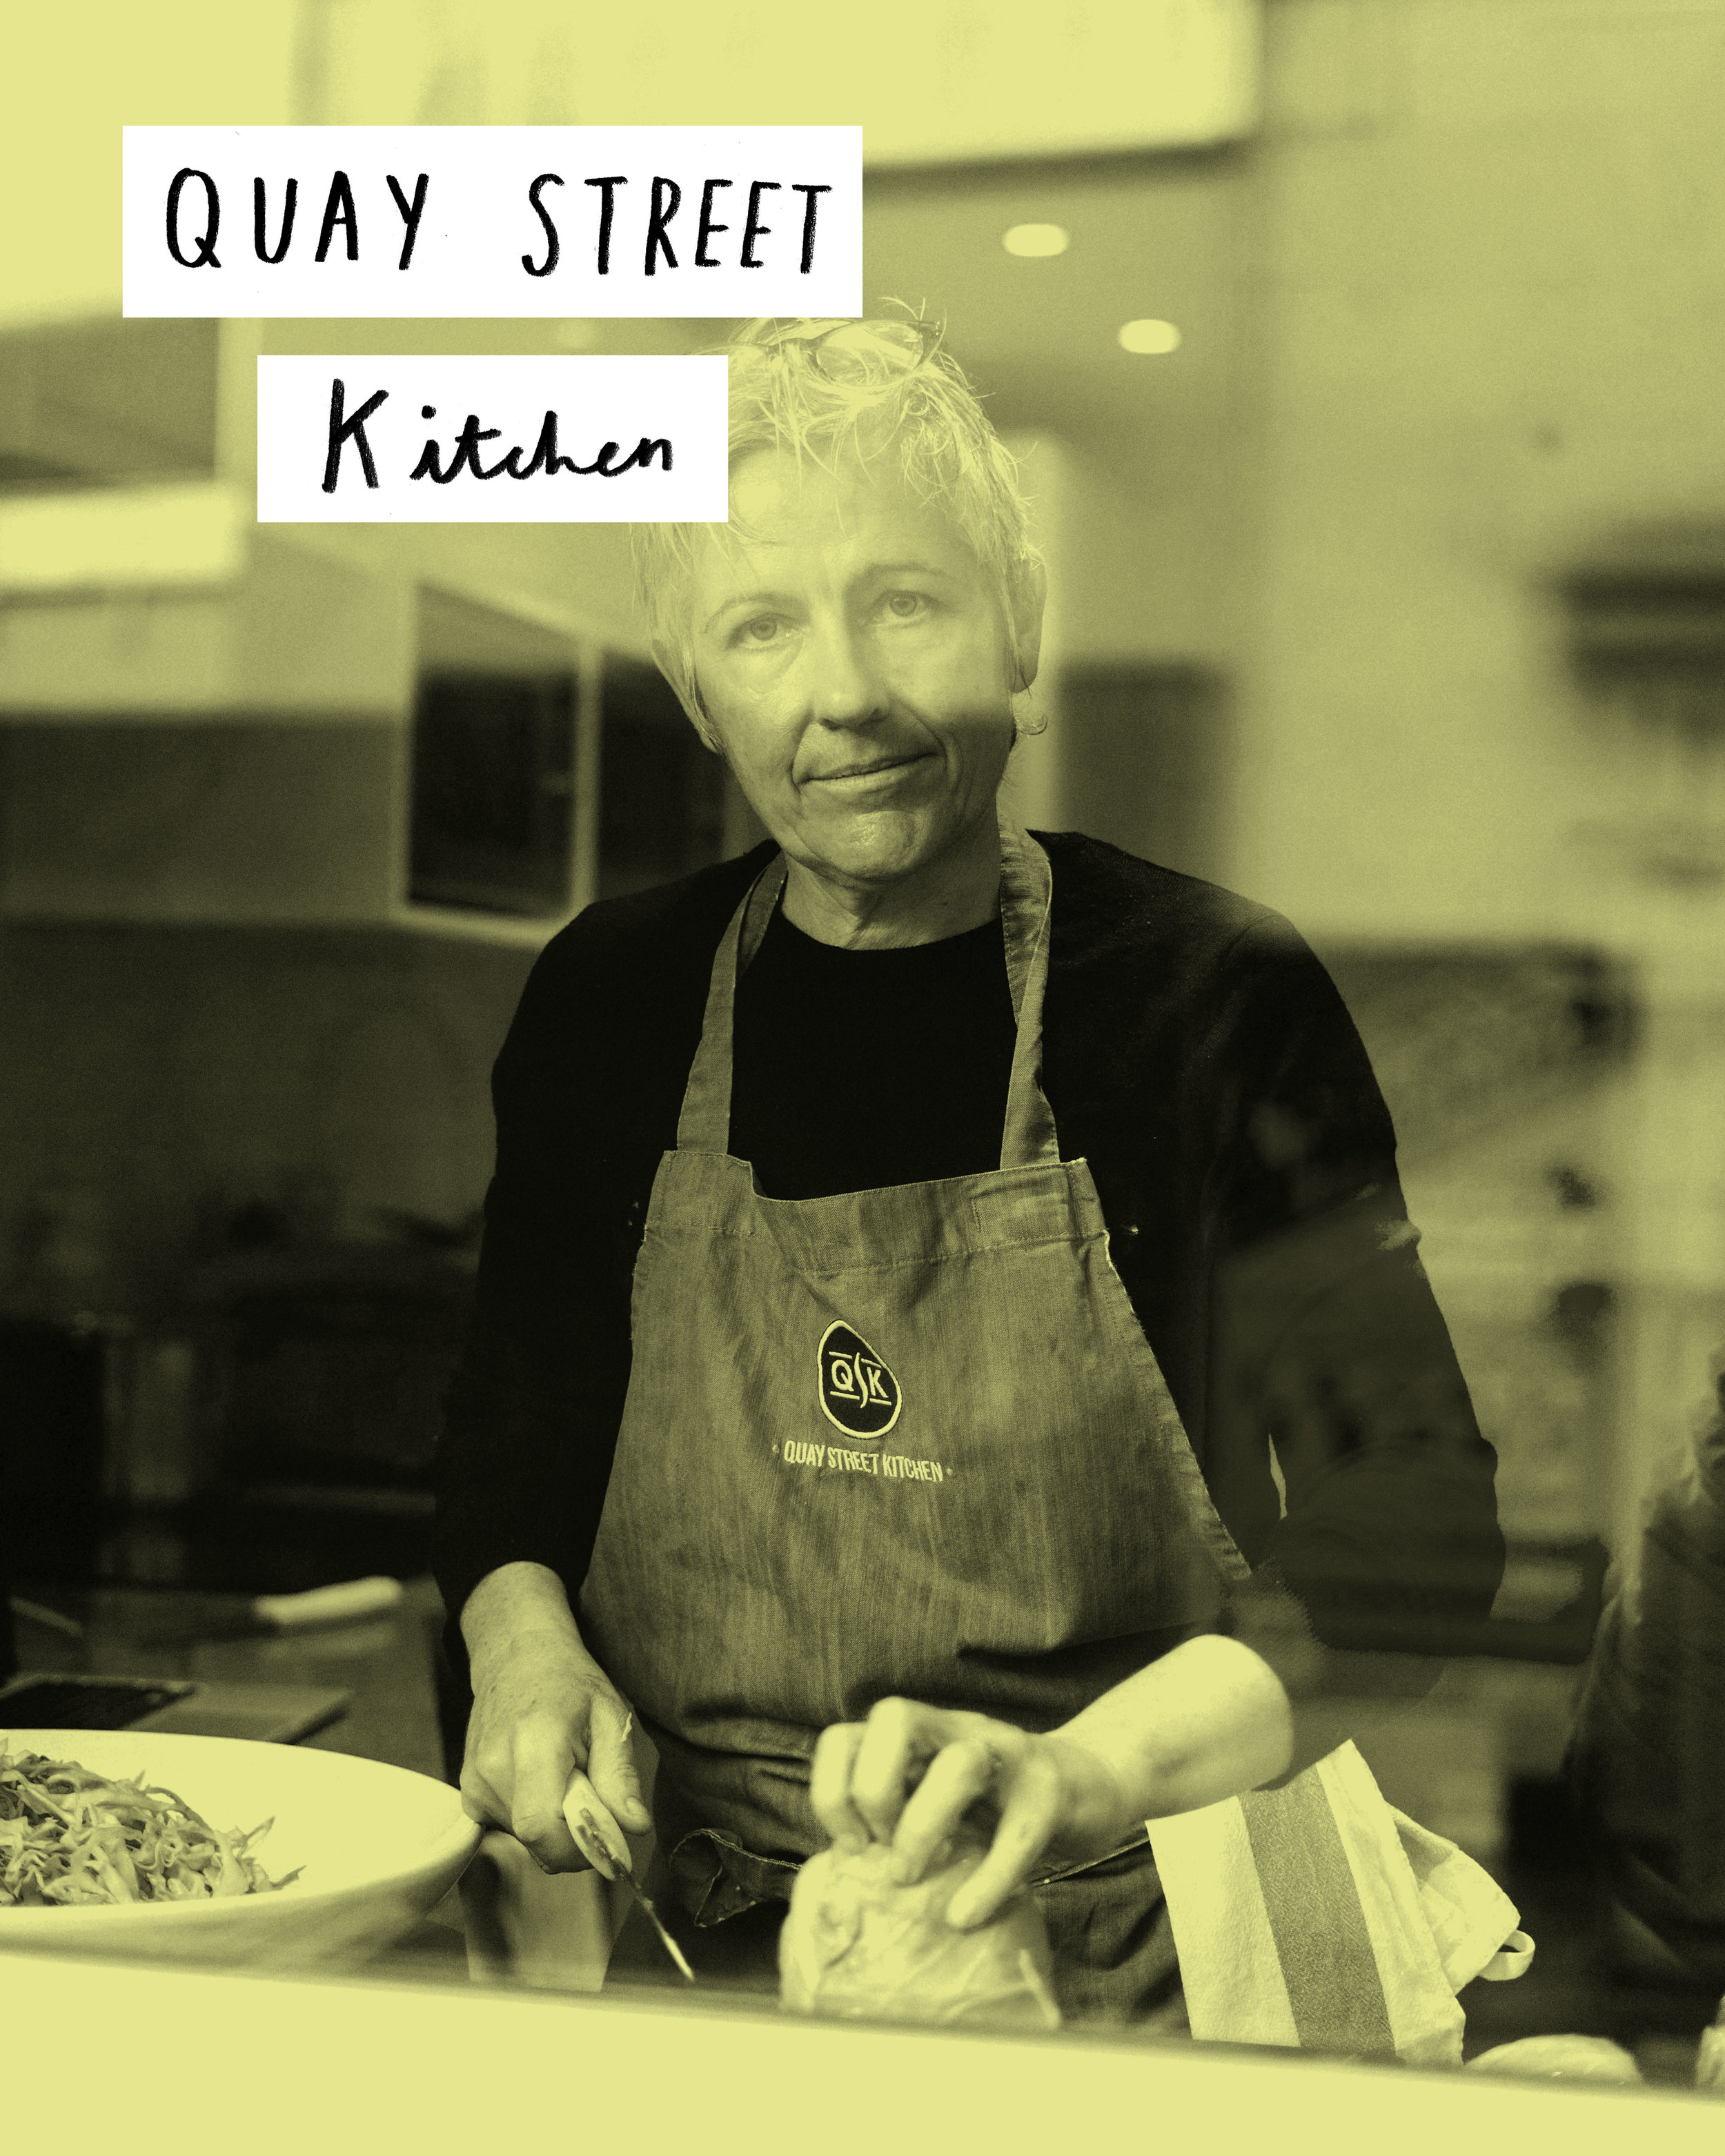 Quay Street Kitchen Cover Image.jpg